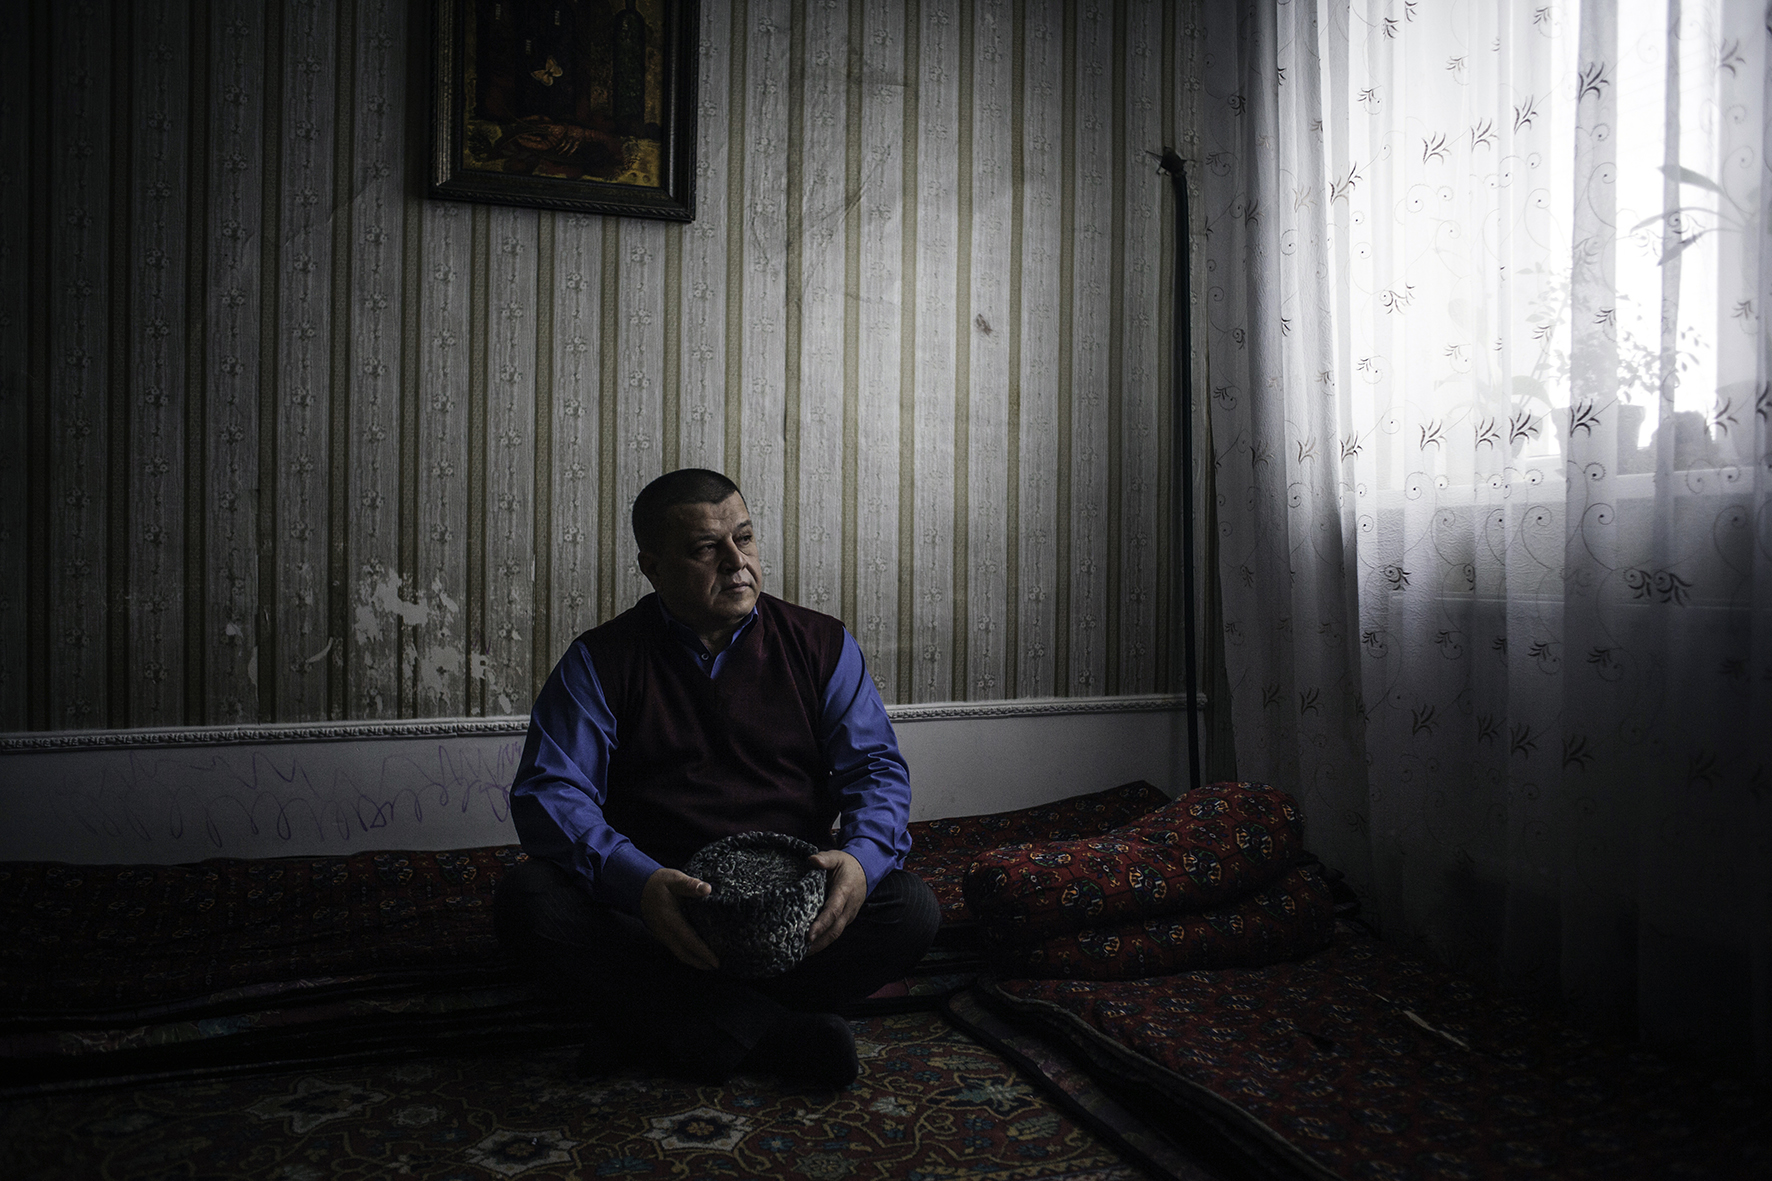 Ali Hamzin. political leader of Crimean Tatar community, Bakhchissaray, Crimea, 2014